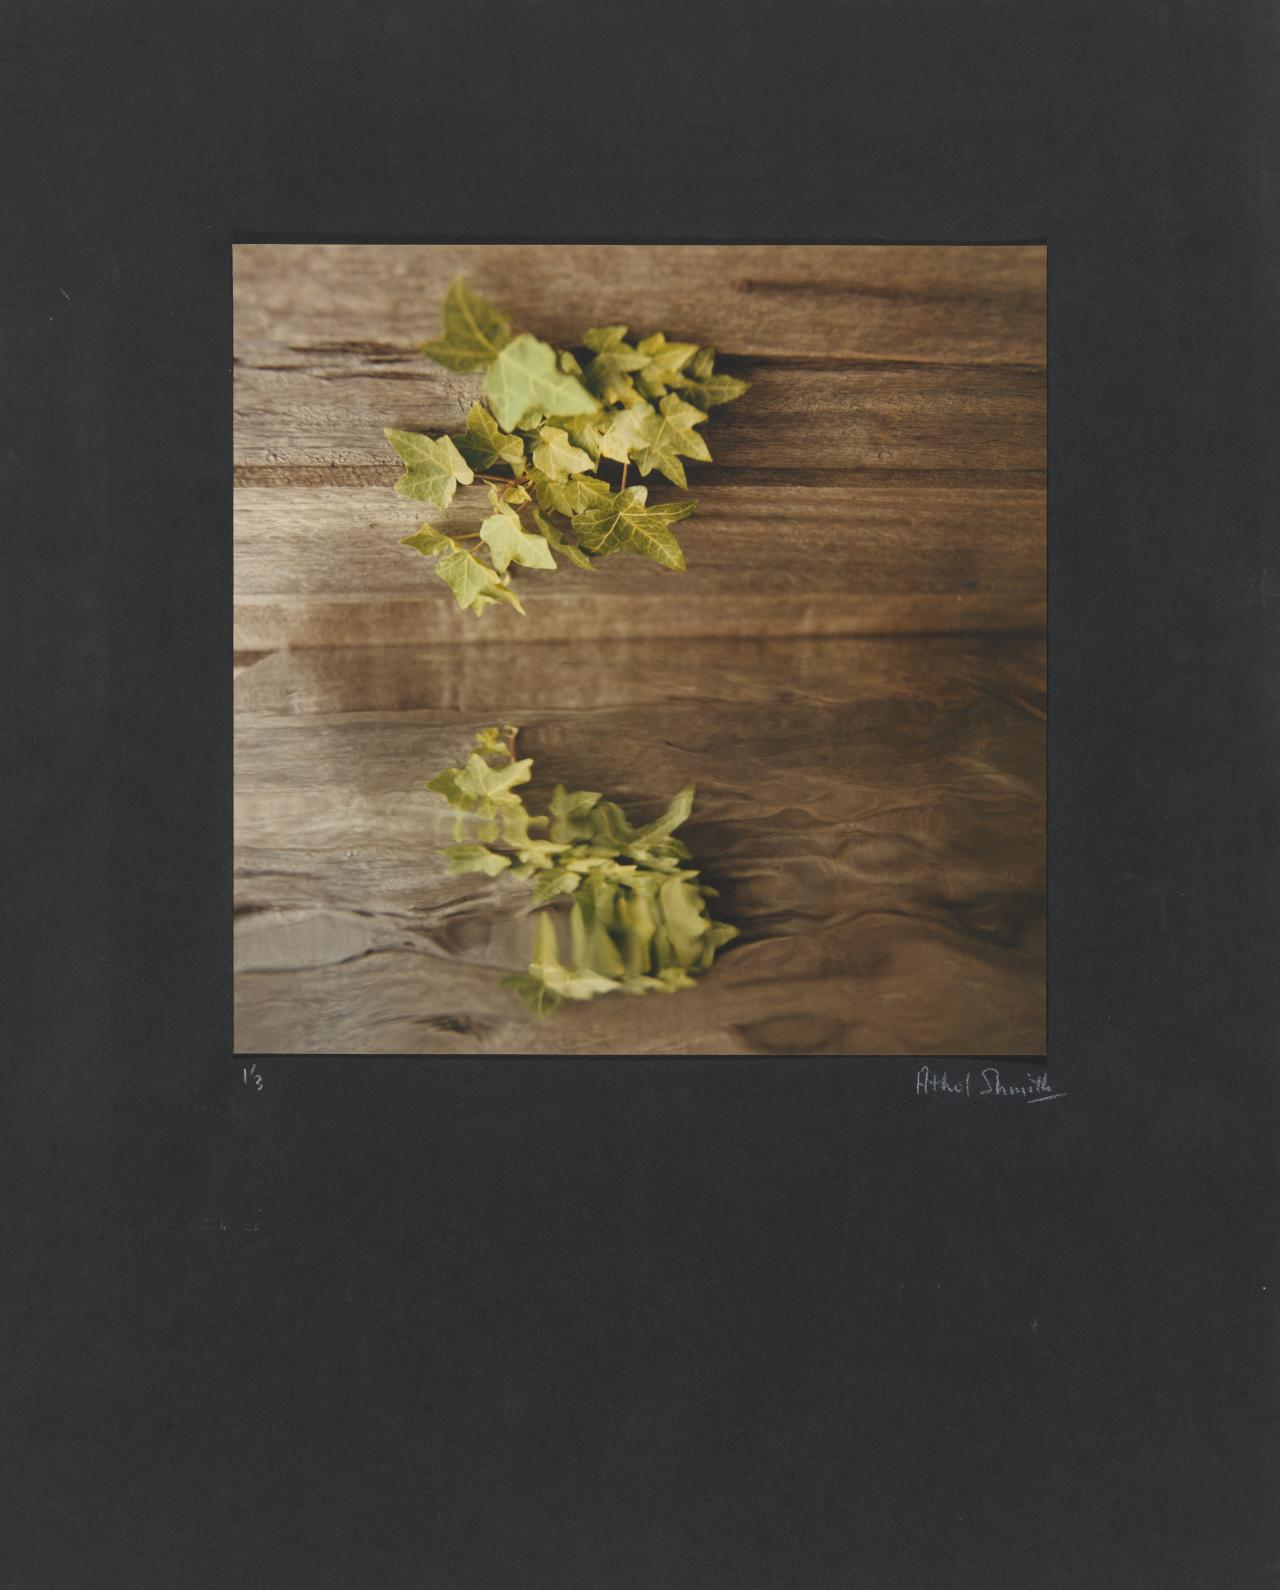 No title (Still life. Ivy on wood)